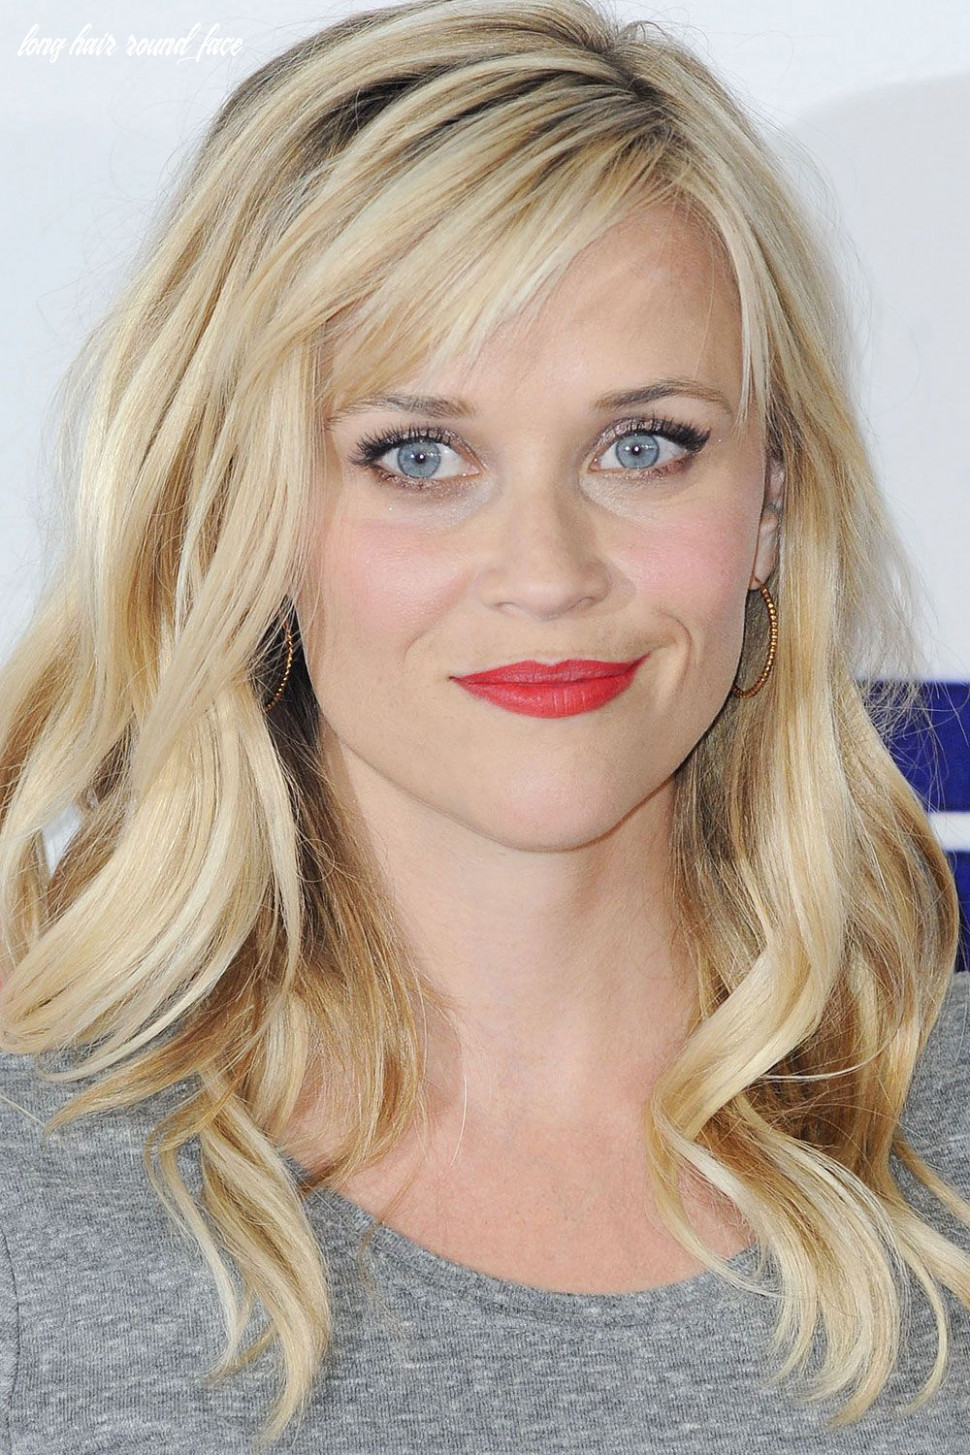 11 hairstyles for round faces that are seriously flattering ...